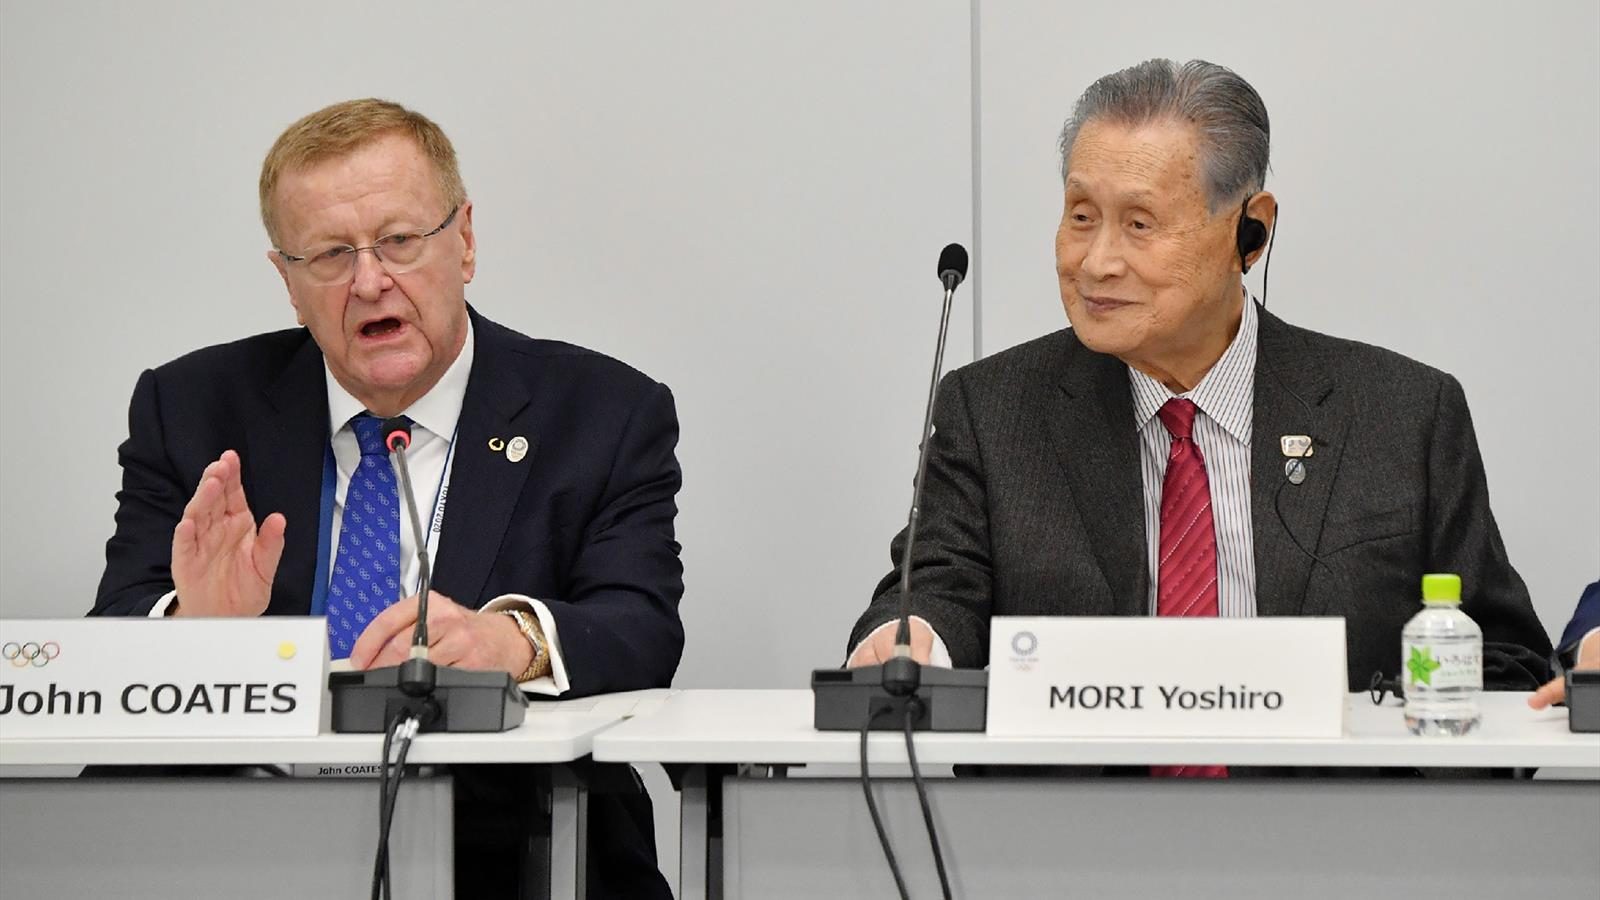 Tokyo 2020 president Yoshiro Mori, an 82-year former prime minister and cancer survivor, pointed to his own health battles as inspiration for the difficult times (Image: Eurosport)